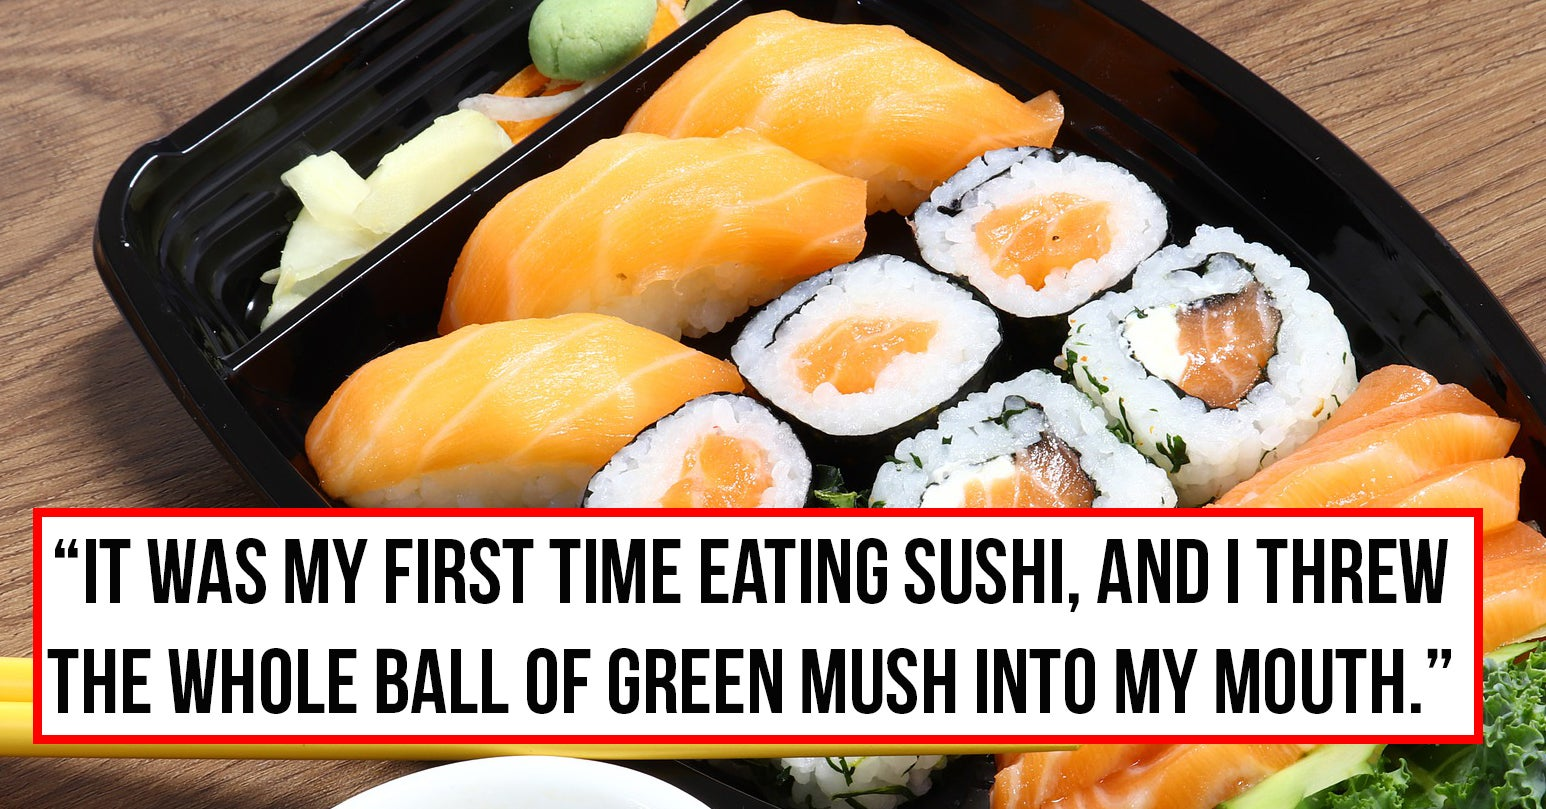 17 Cringeworthy Things People Did While Eating At Fancy Restaurants